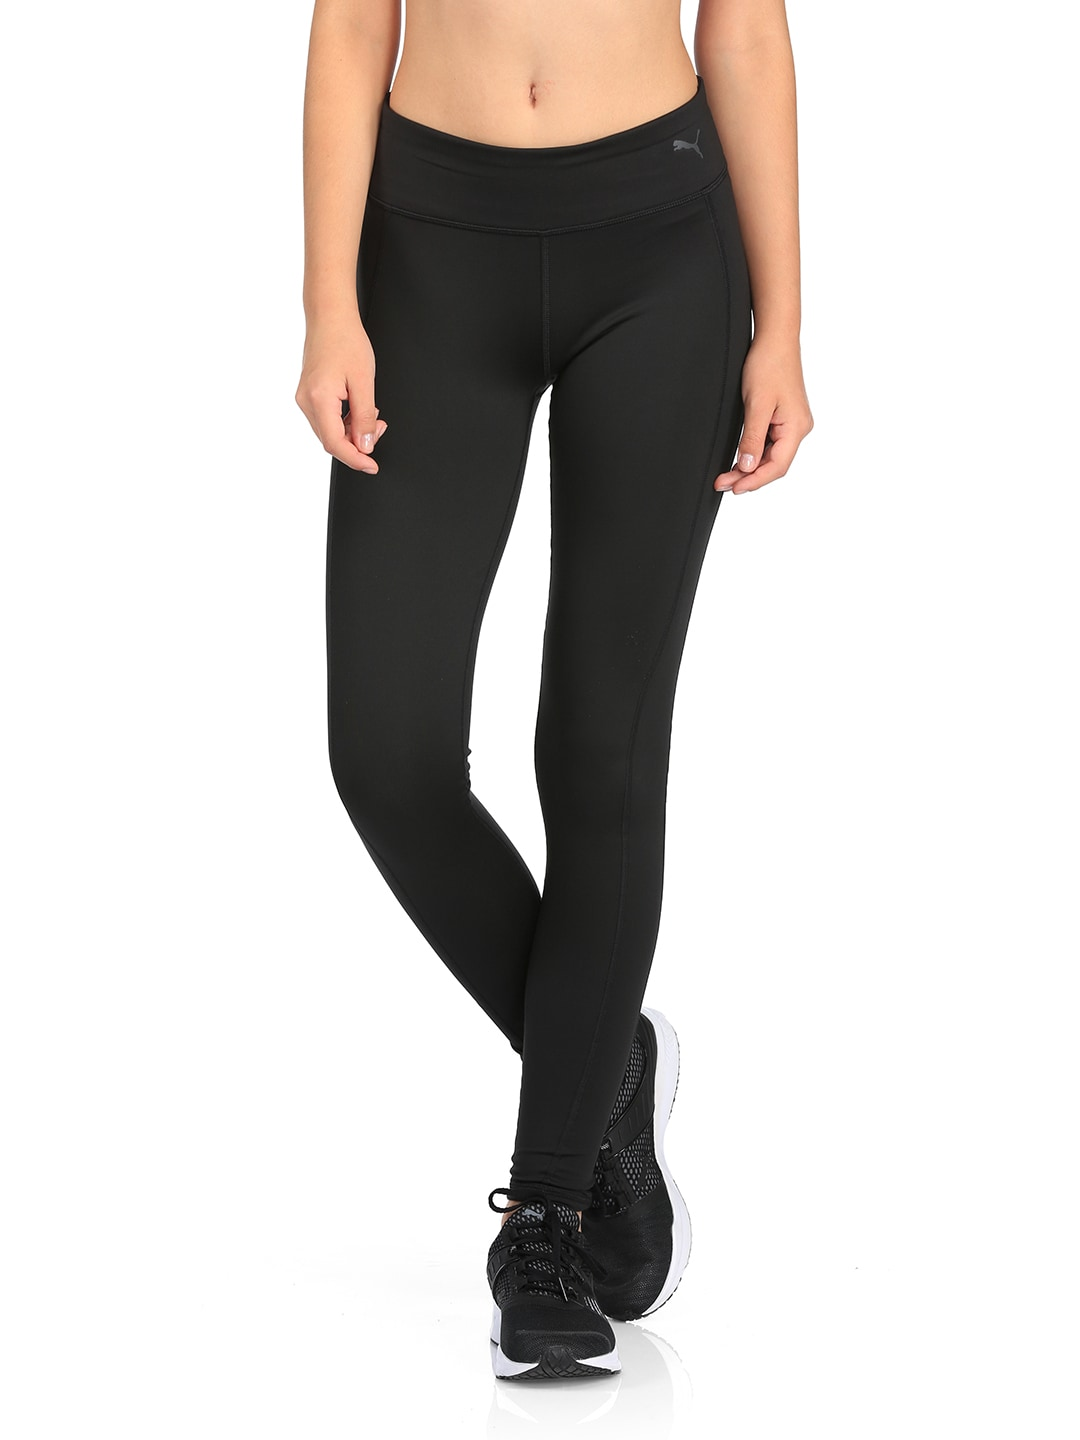 the latest 4d73a 06c8f Buy Puma Black Yogini Lux Tights - Tights for Women 2084486   Myntra